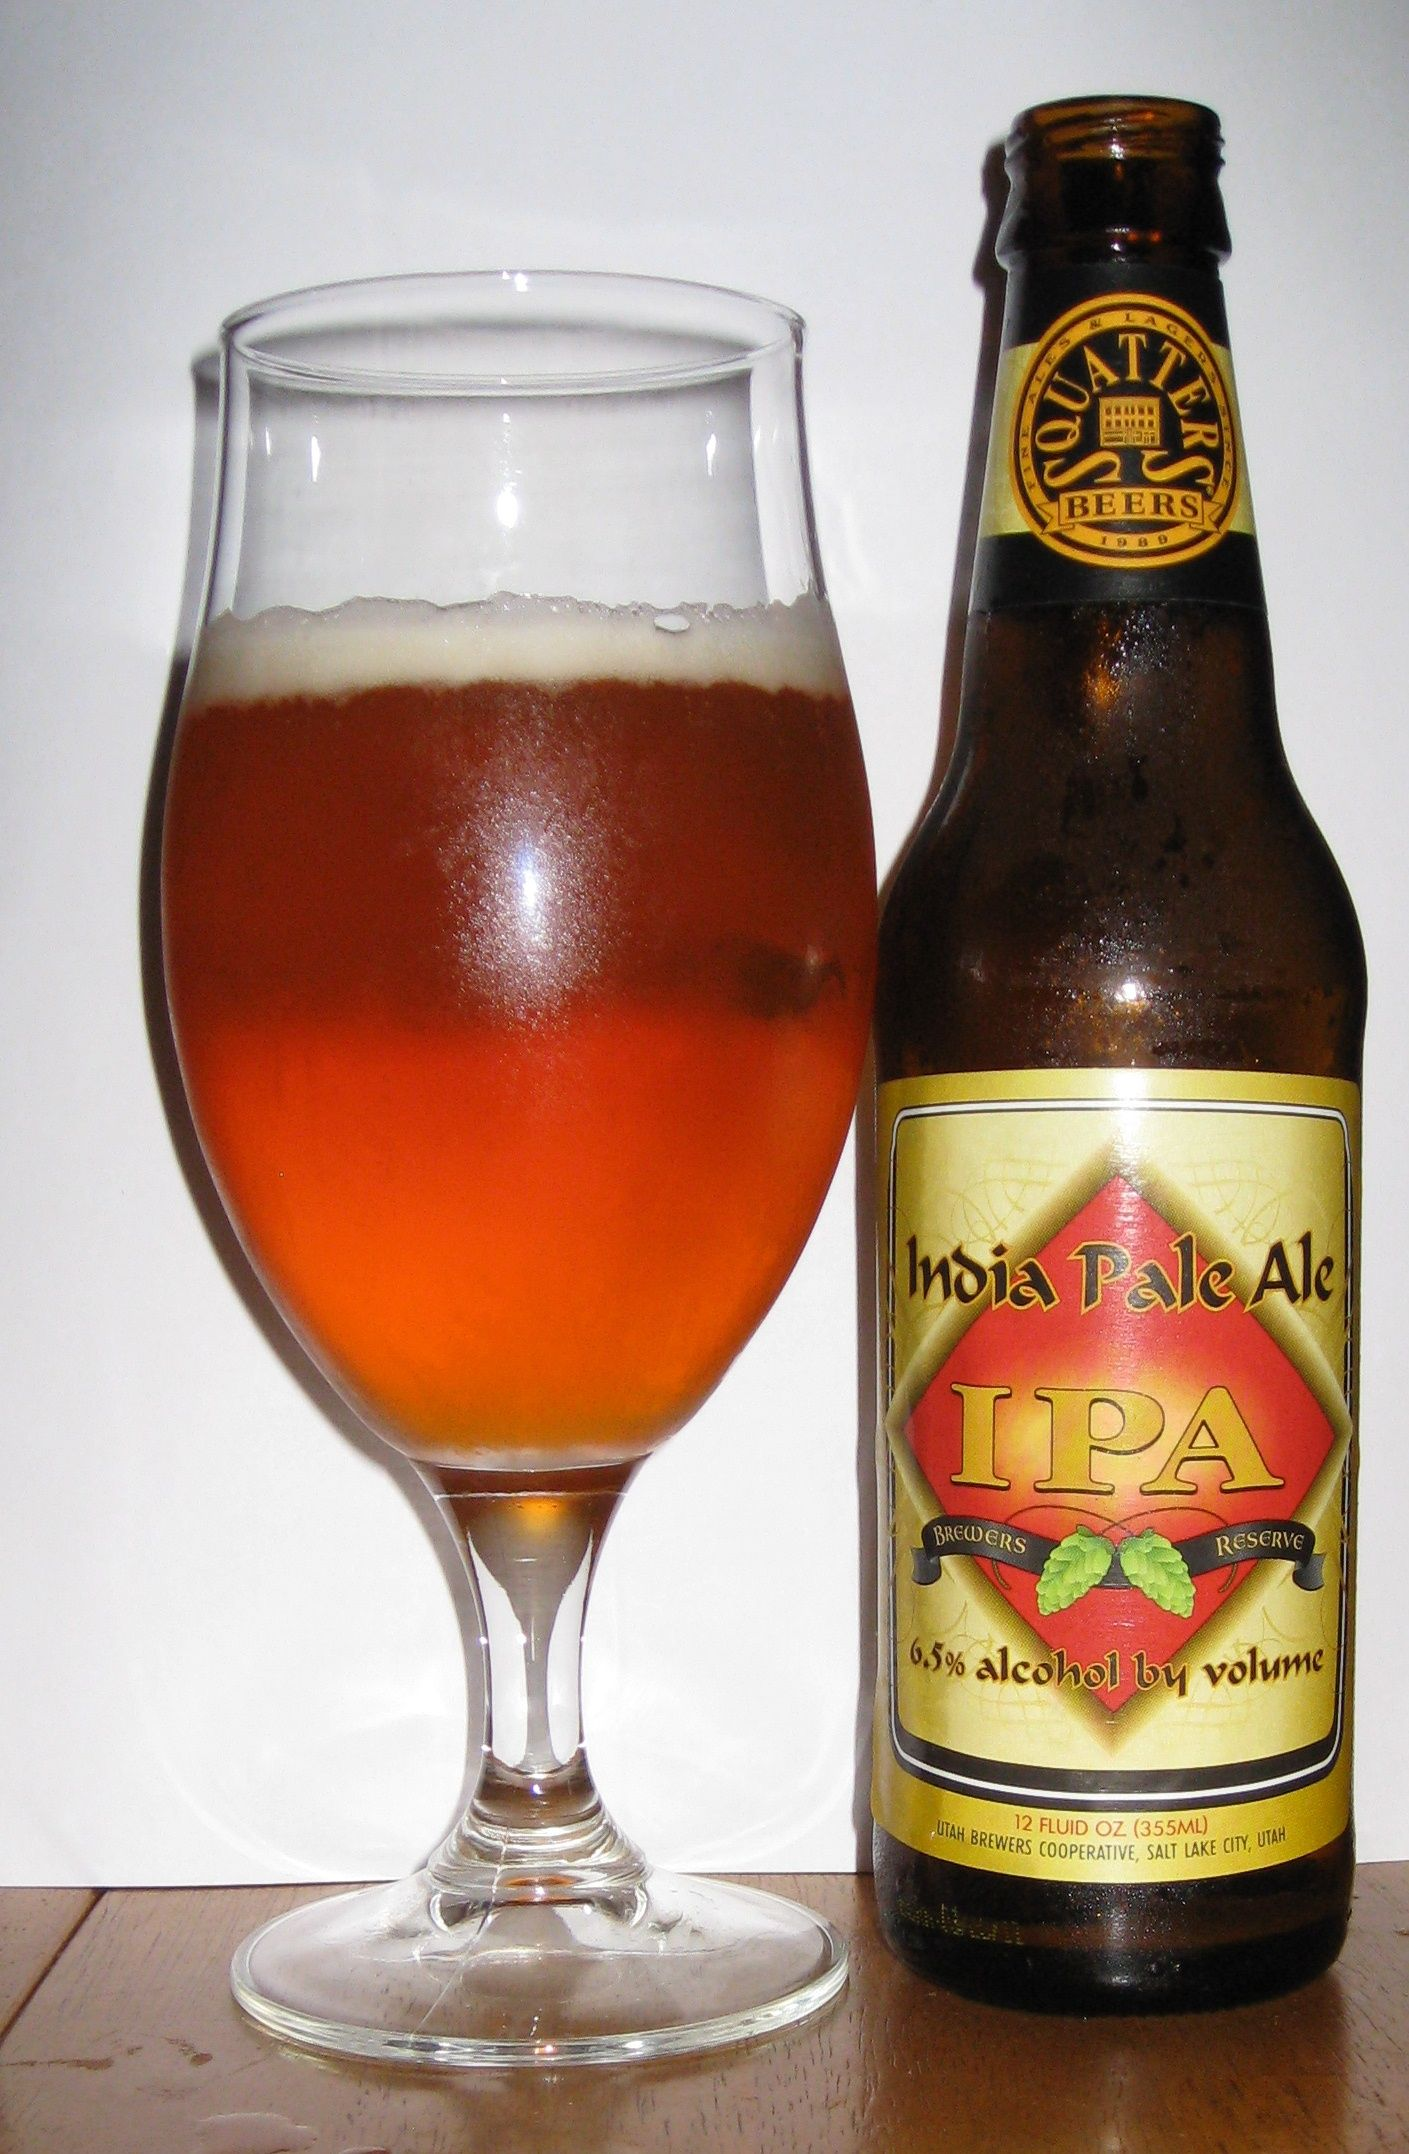 Squatter S Beers India Pale Ale India Pale Ale Pale Ale Beer